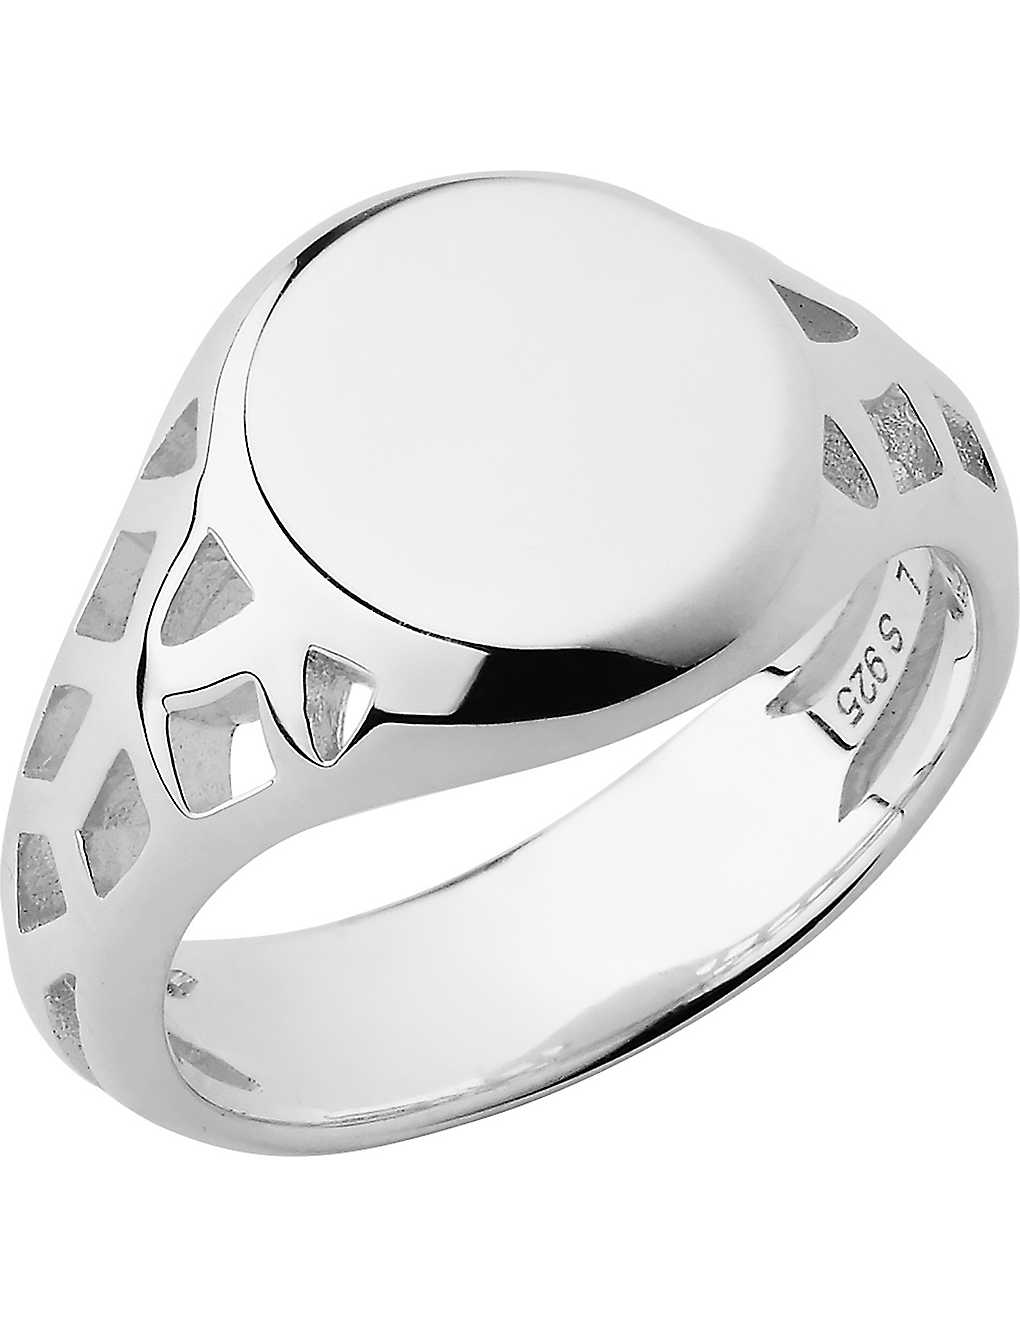 LINKS OF LONDON: Timeless sterling silver signet ring